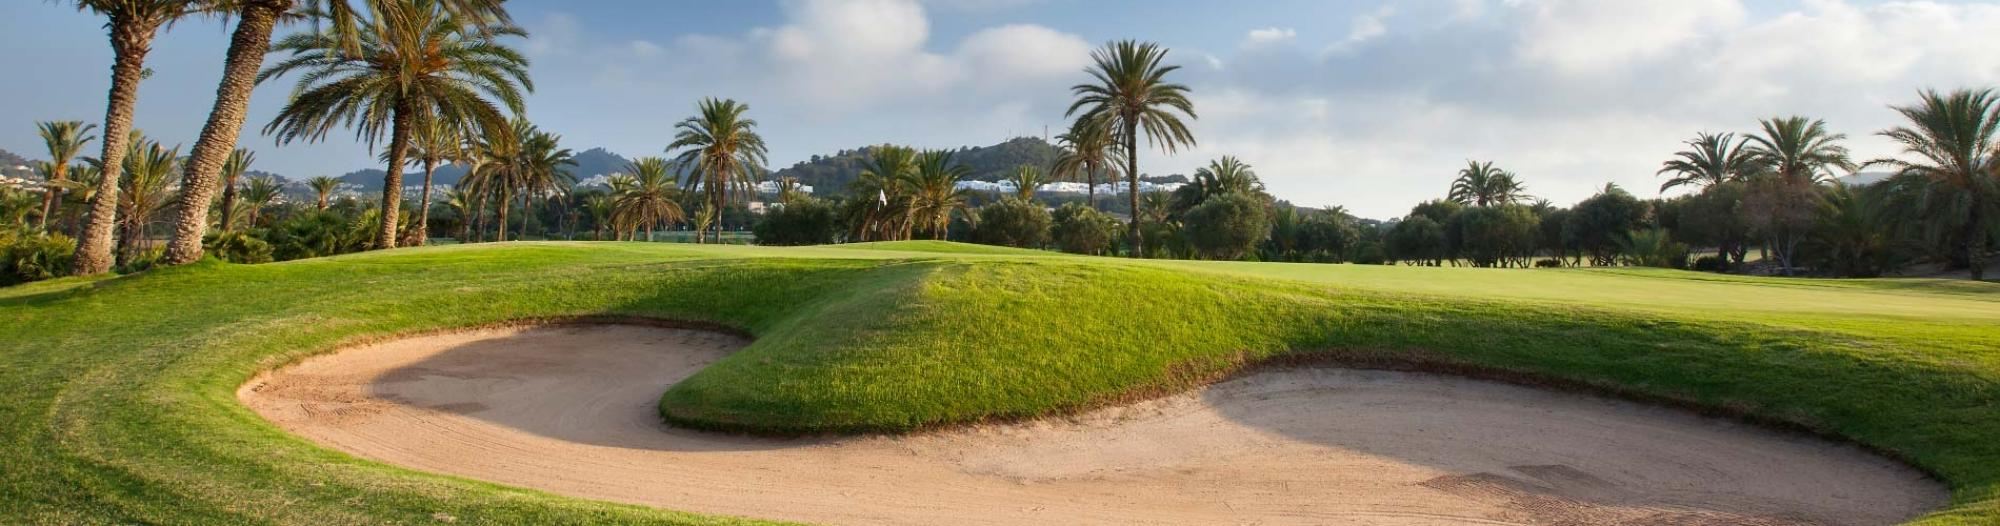 The La Manga Golf Club, North Course's beautiful golf course within pleasing Costa Blanca.